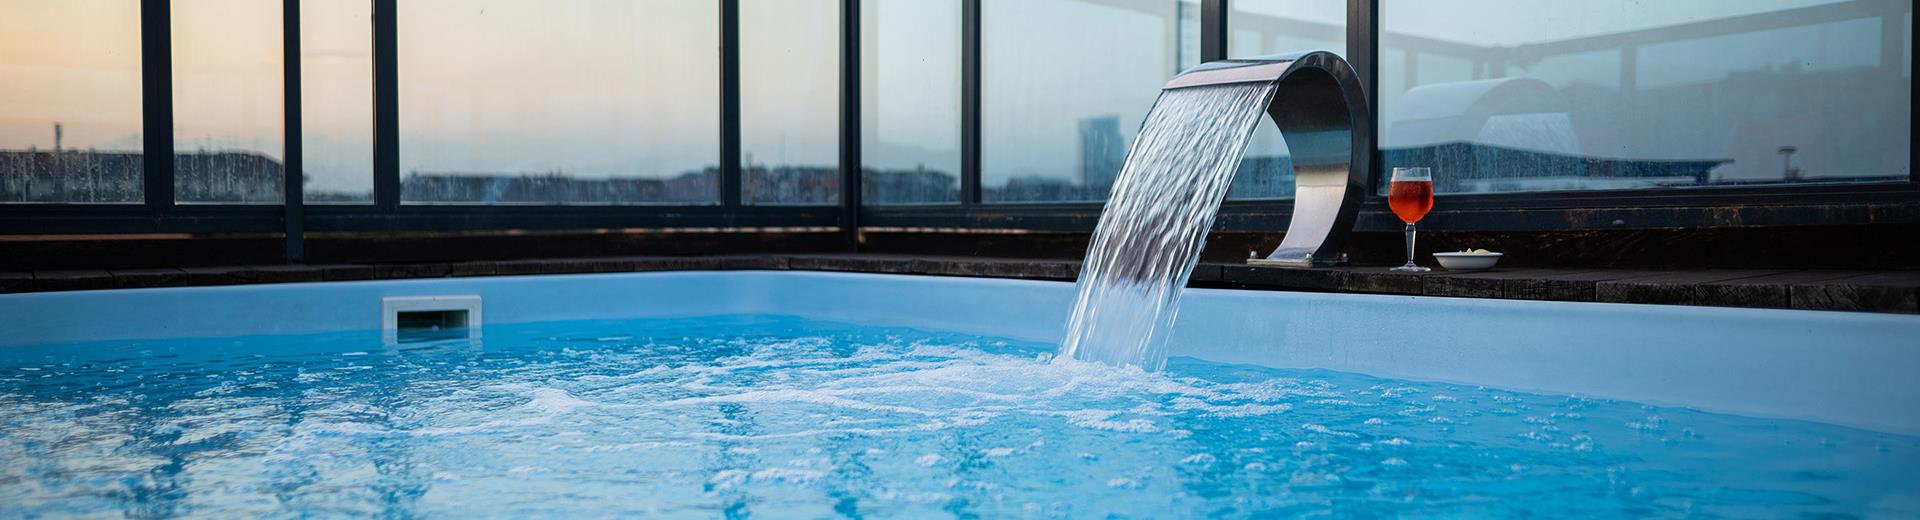 On the rooftop of the BW Plus Executive Hotel and Suites you''ll find jacuzzi and relaxation area